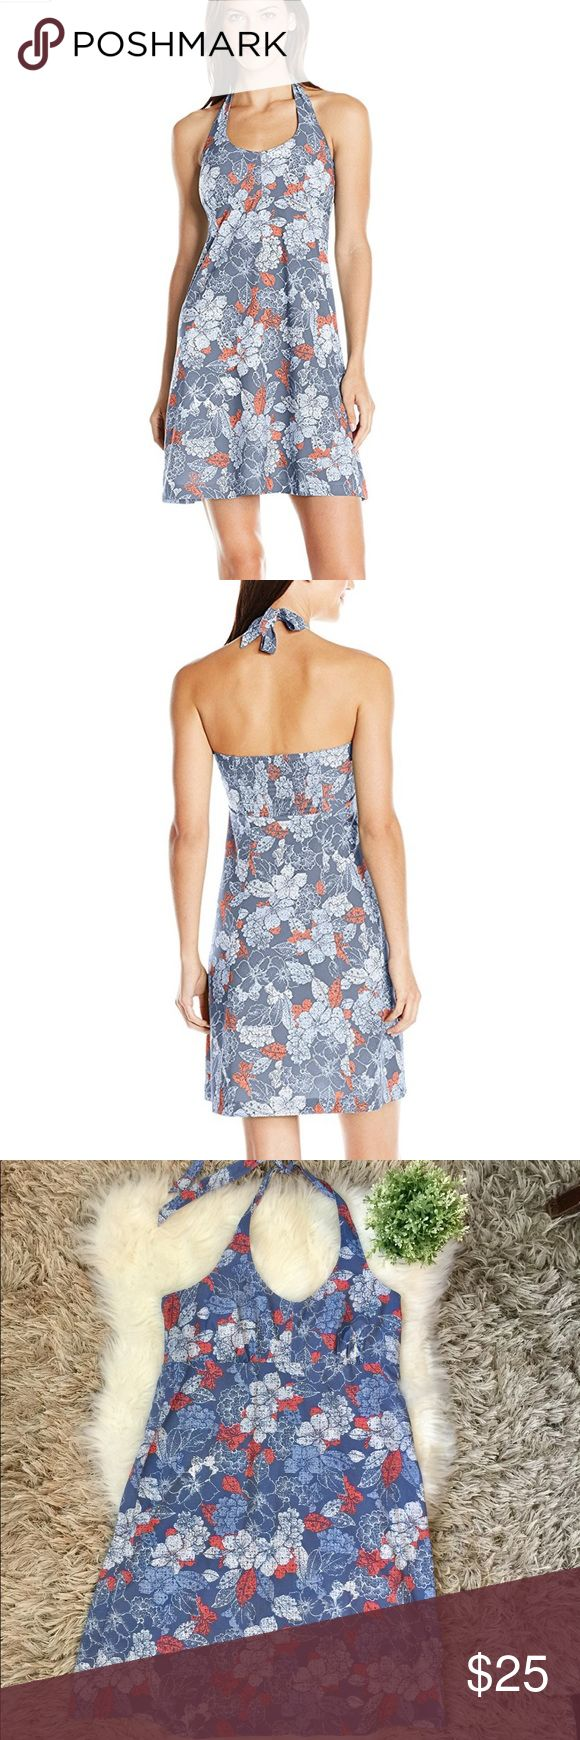 """Columbia PFG Armadale Halter Dress Columbia PFG Armadale Halter Dress in Empress Floral Print. Blue with orange and white flowers. Moisture wicking, slightly stretchy, lightweight fabric. Scoop neck. Sleeveless. Adjustable halter neck. Seamed empire waist. Lightly flared knee-length skirt. Slip-on and unlined. Size large (measurements laying flat, bust: 18"""", length [middle of chest to bottom]: 30.5"""") Columbia Dresses Midi"""